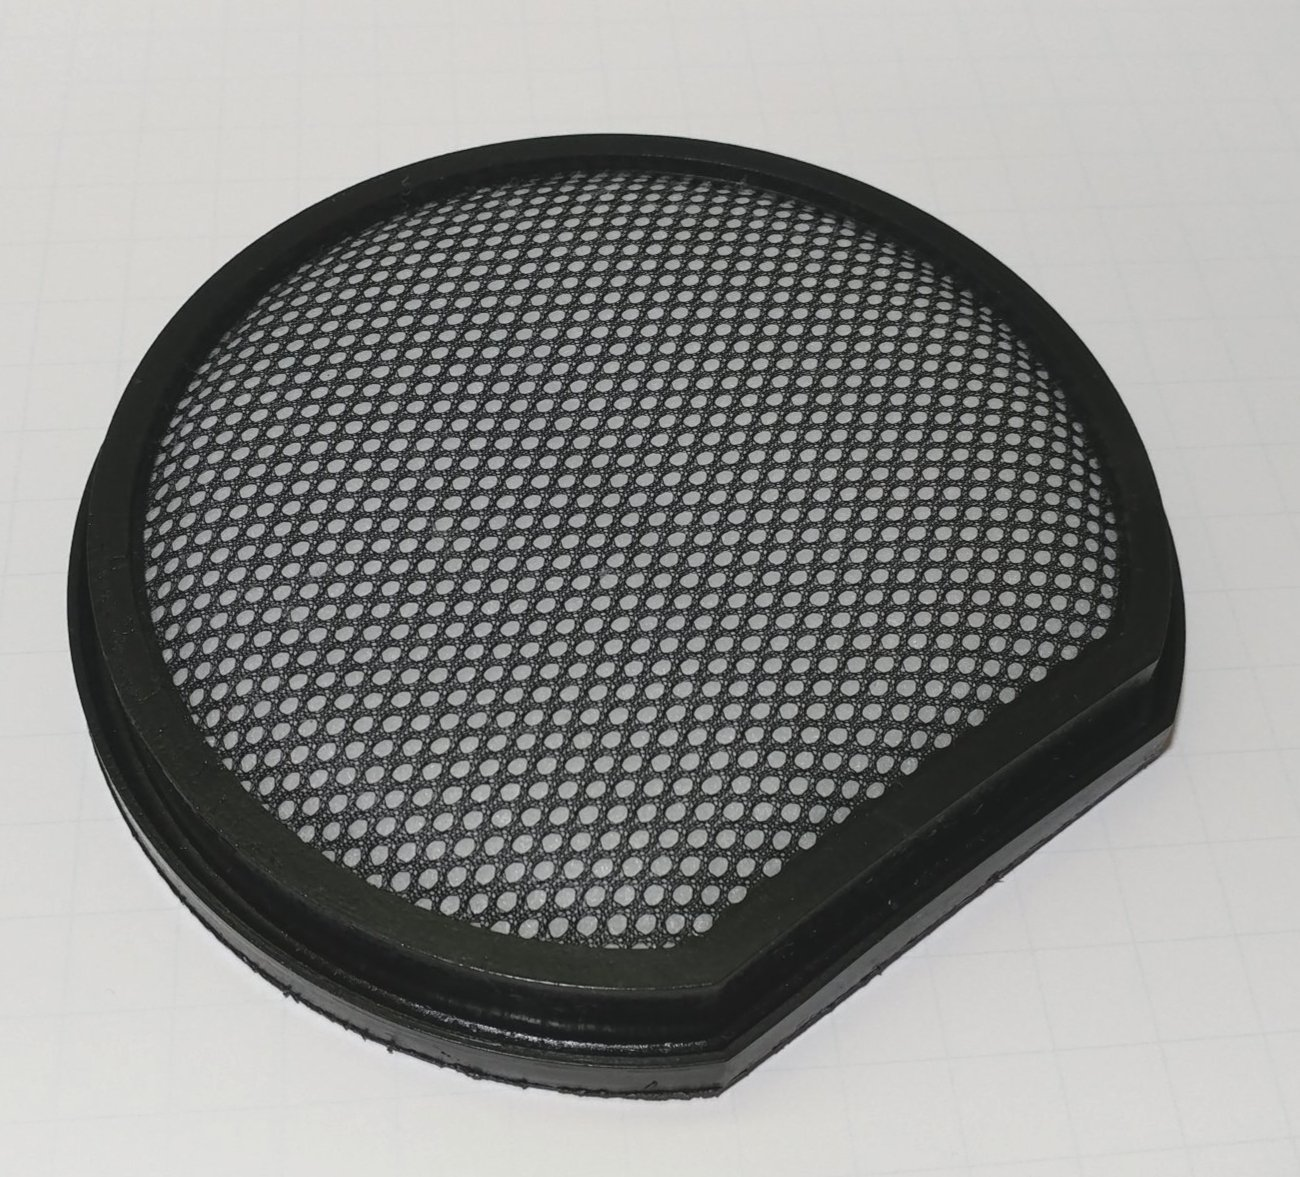 Hoover T-Series WindTunnel Bagless Upright Filter Kit and HEPA Cartridge 303172002 Includes Washable 303173001